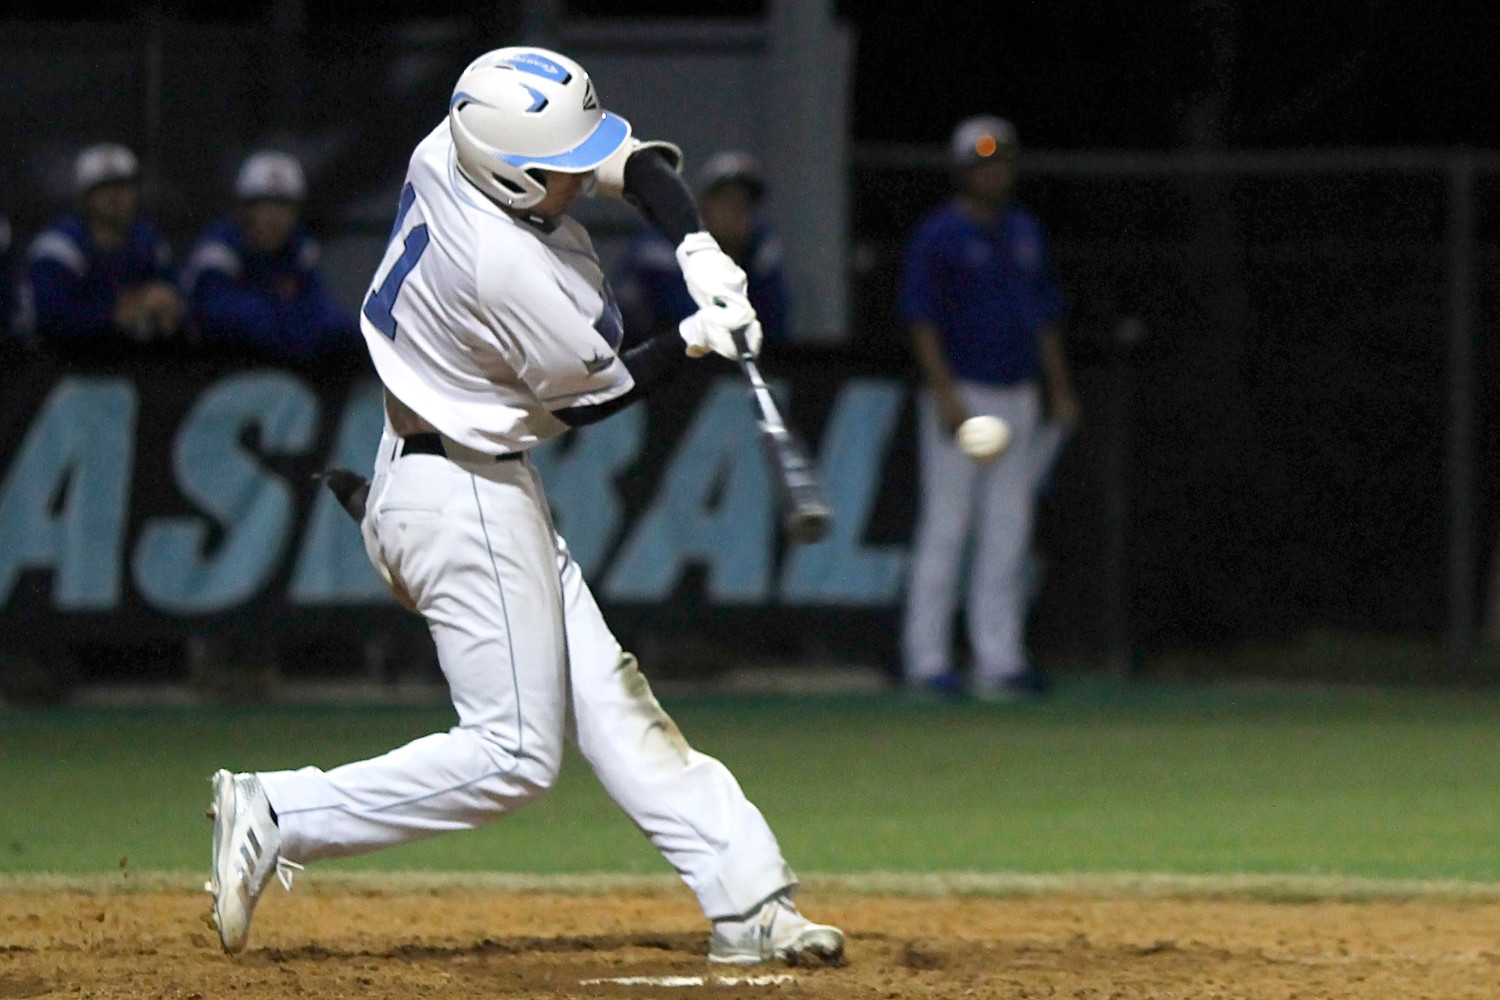 Jacob Young hits a double, one of his two hits against Bolles.